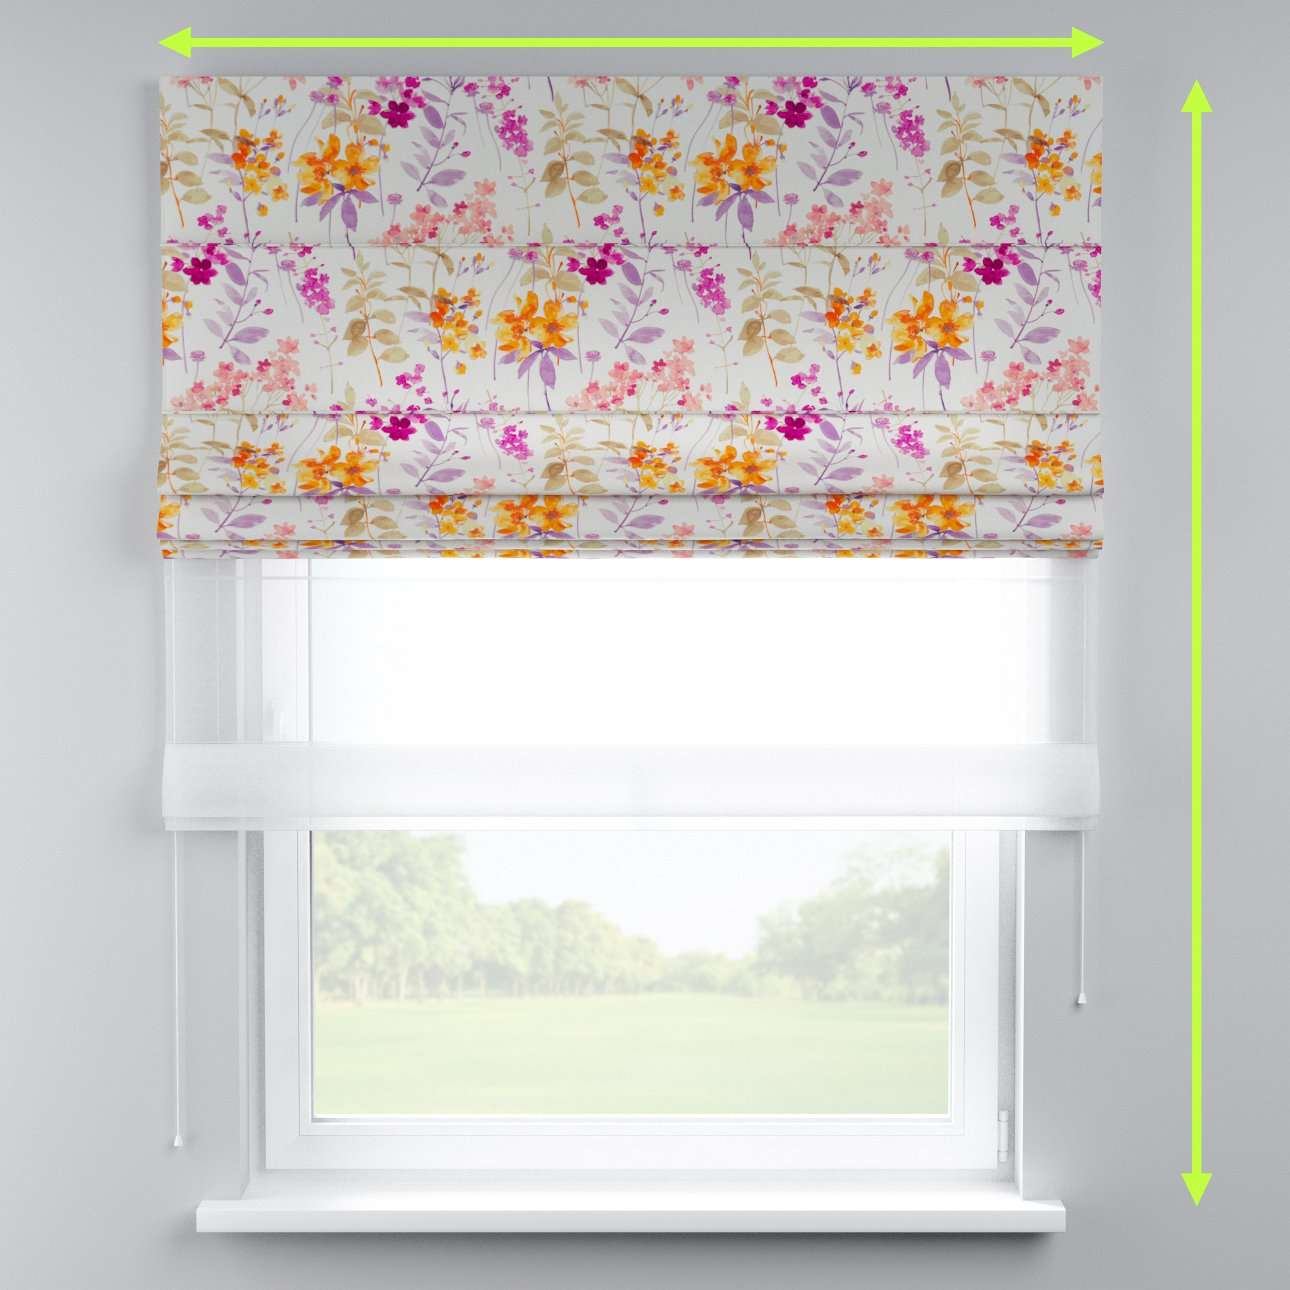 Voile and fabric roman blind (DUO II) in collection Monet, fabric: 140-04